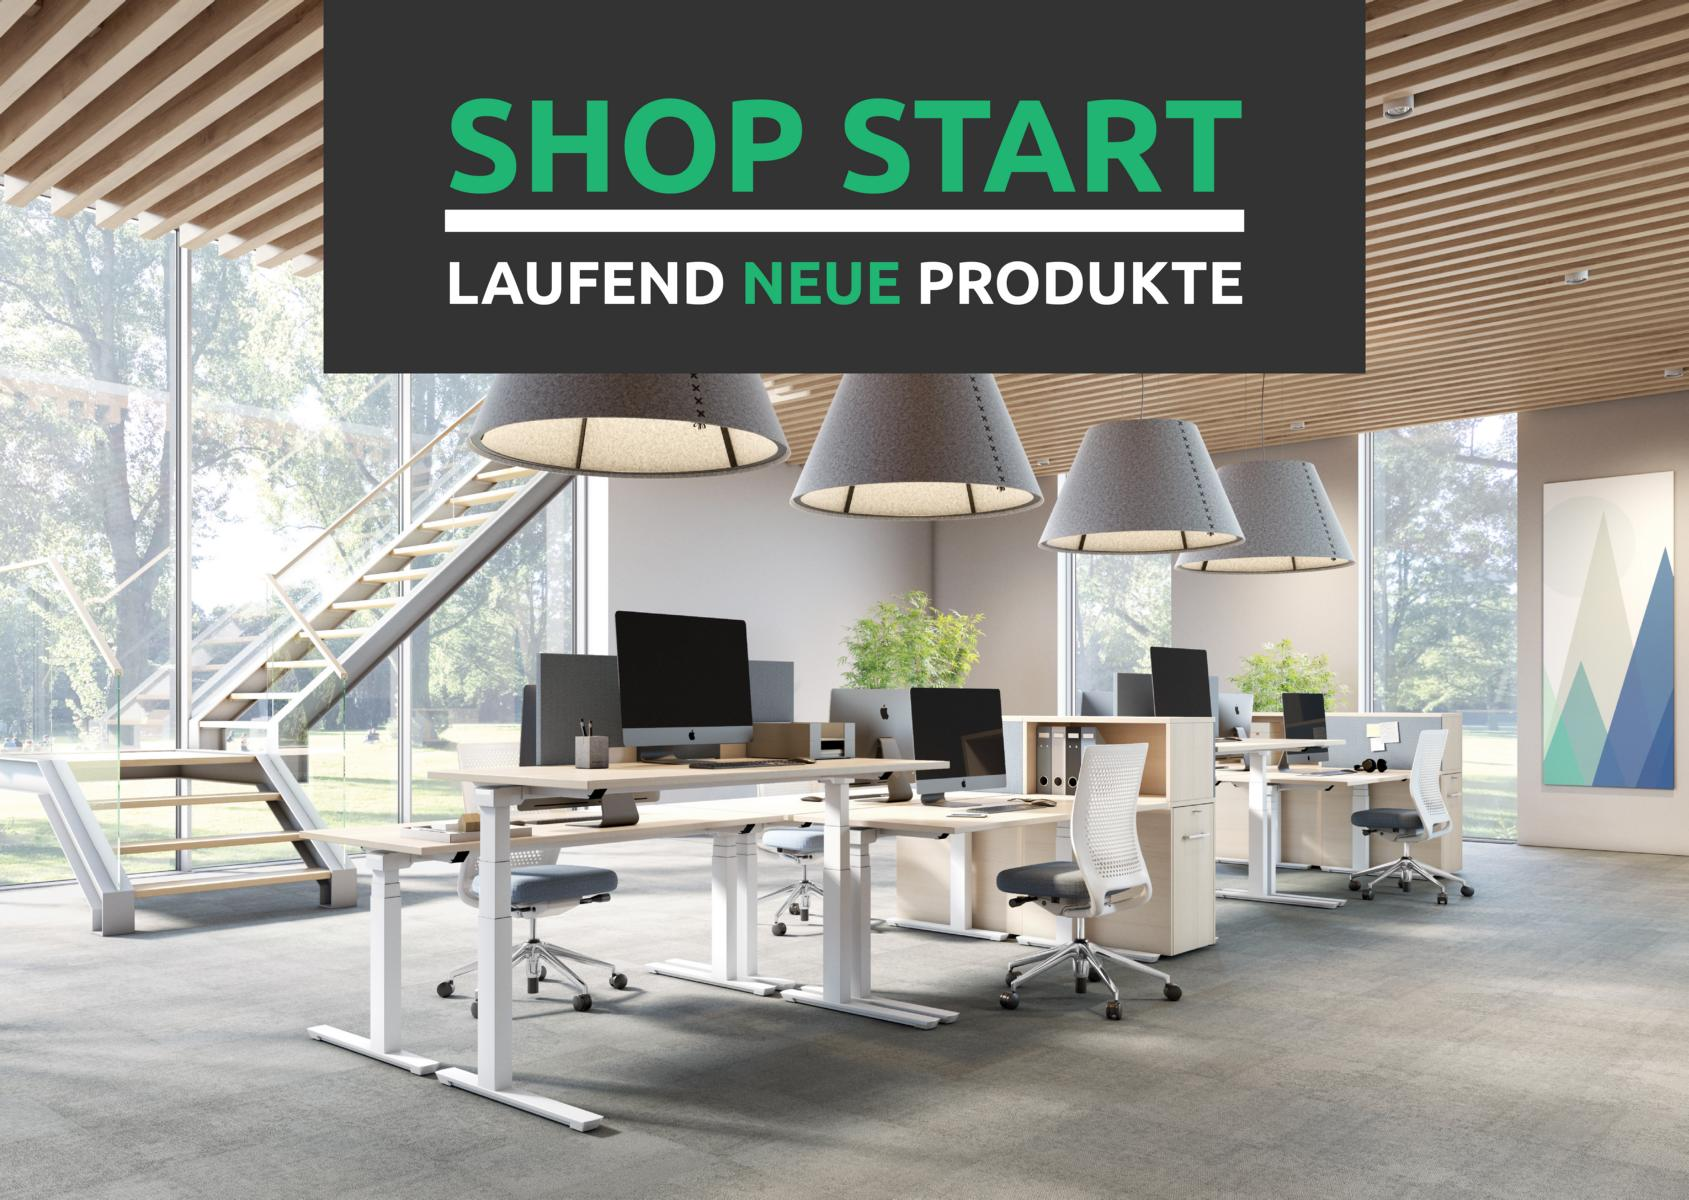 bueromoebel-haendler-alsfeld-shop-start